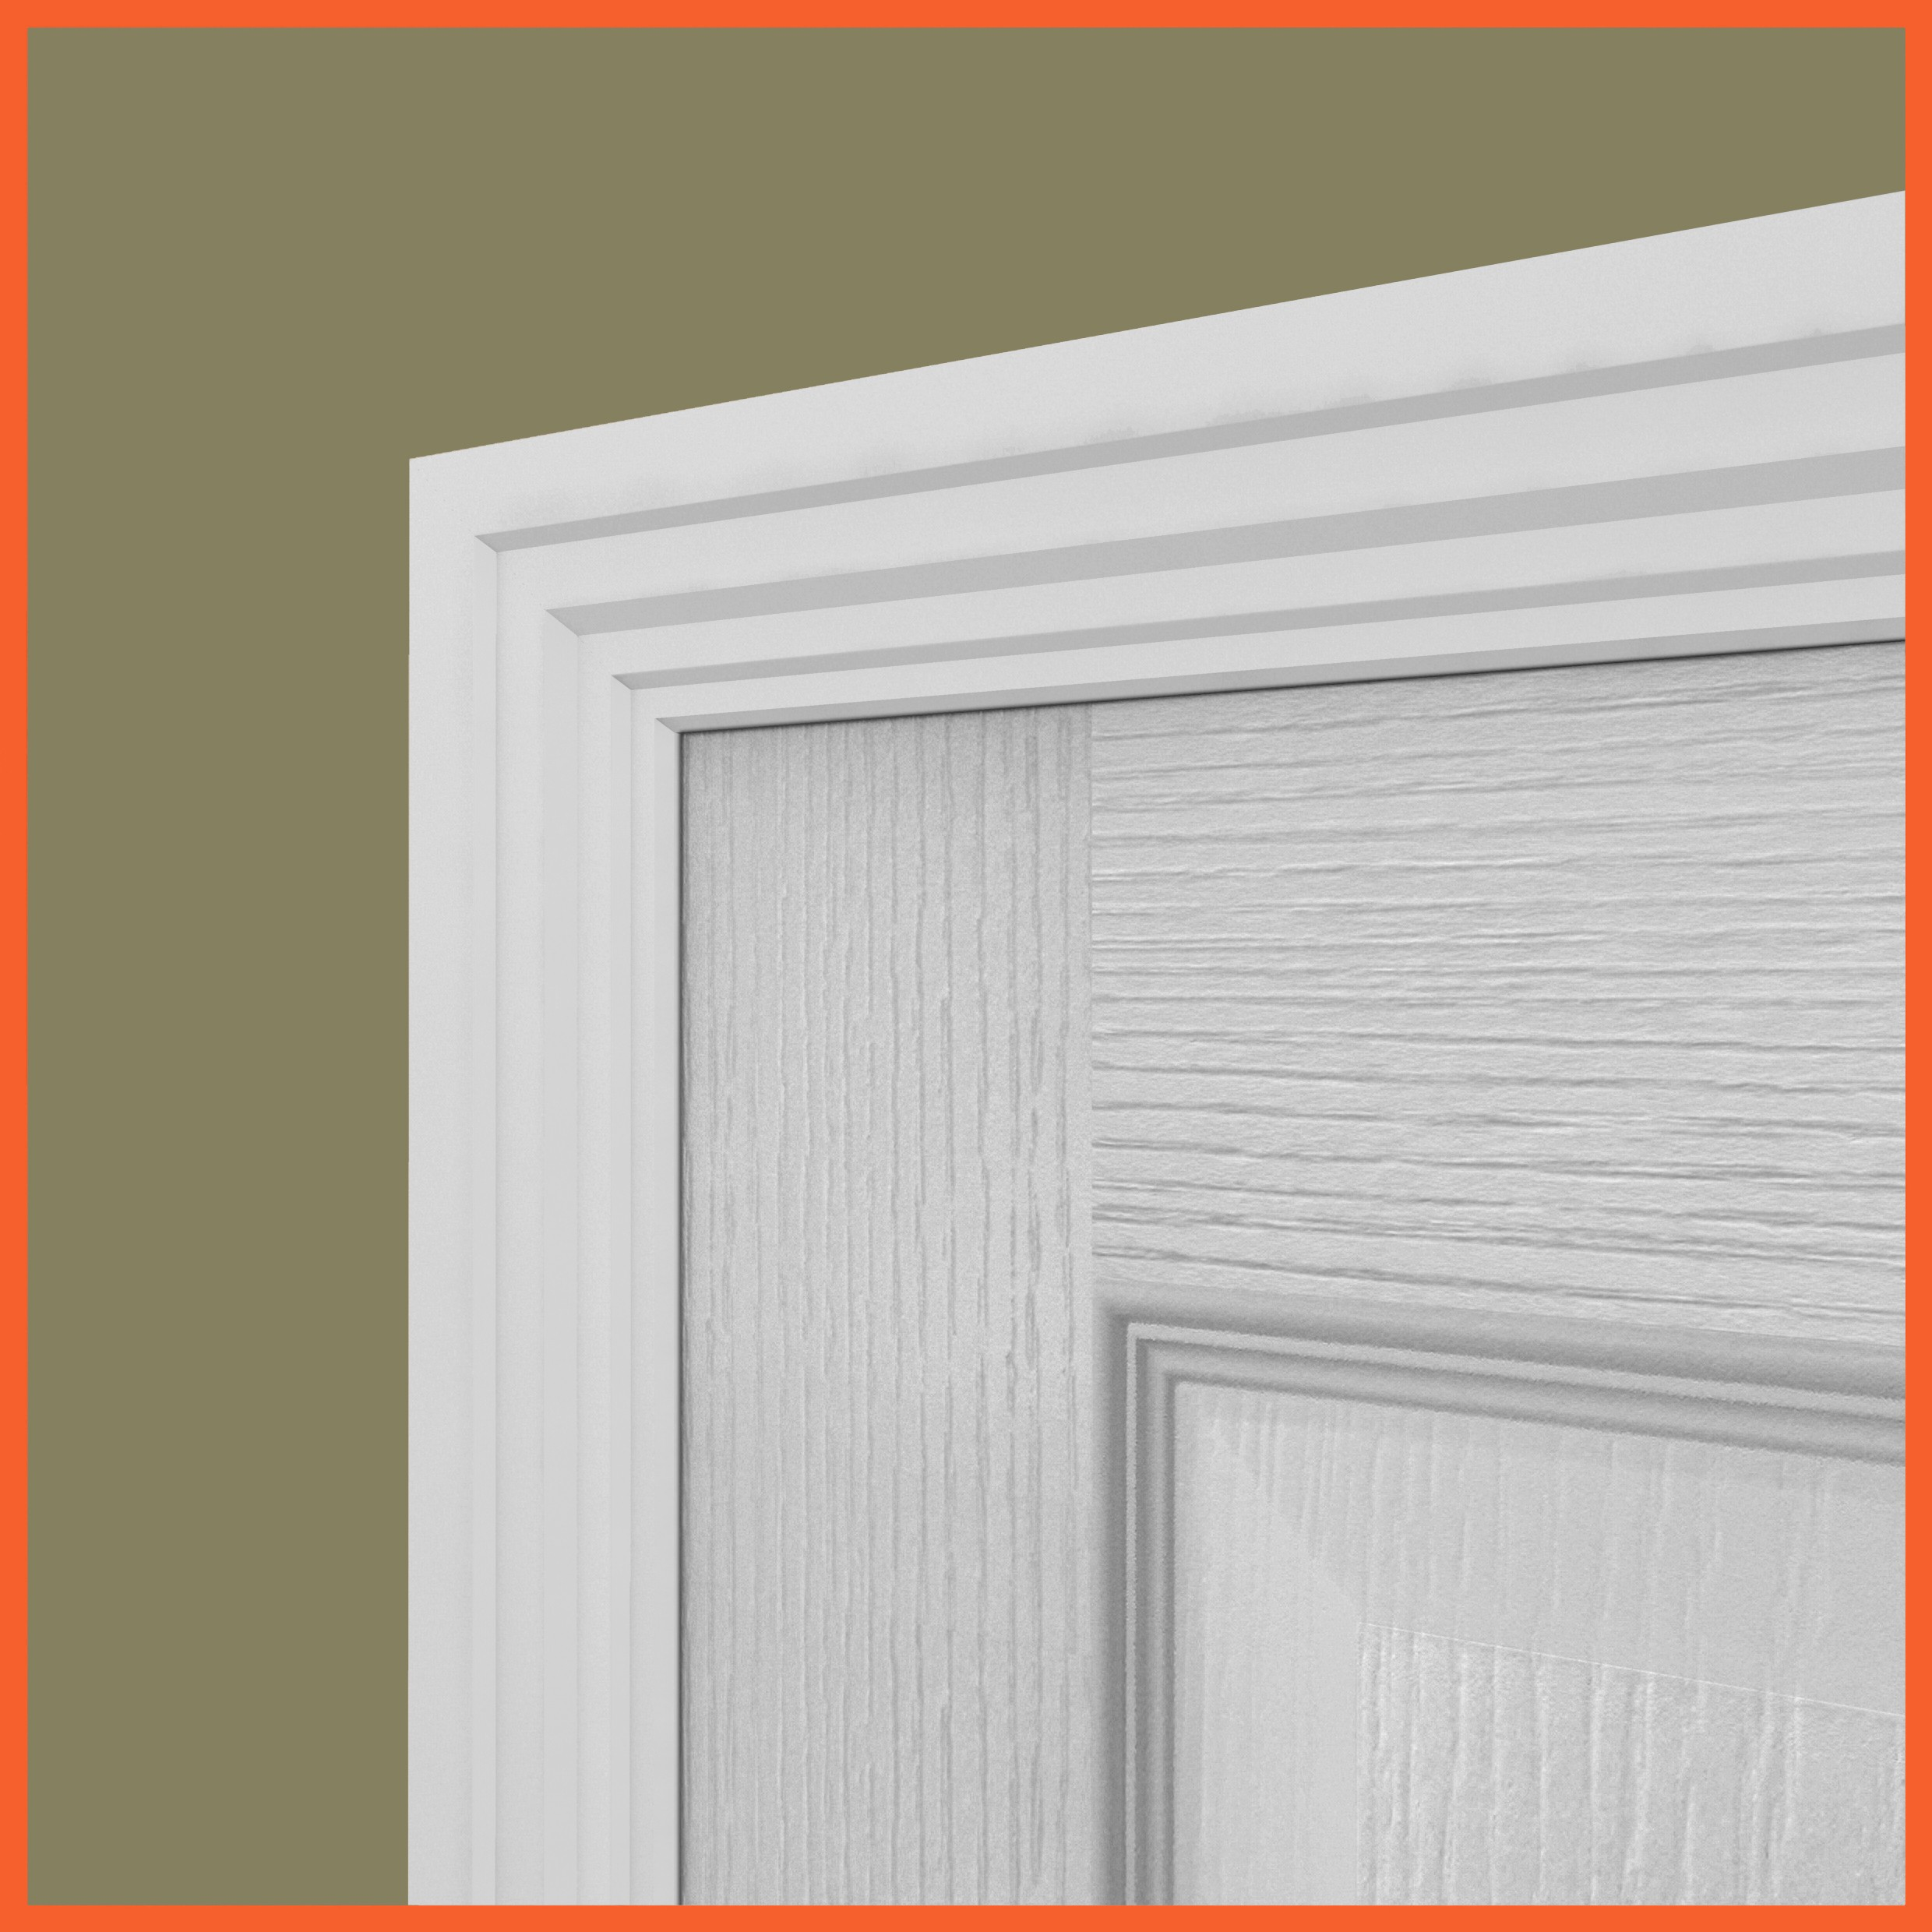 sc 1 st  Skirting 4 u & Stepped MDF Architrave (Door Surround) | Skirting 4 U